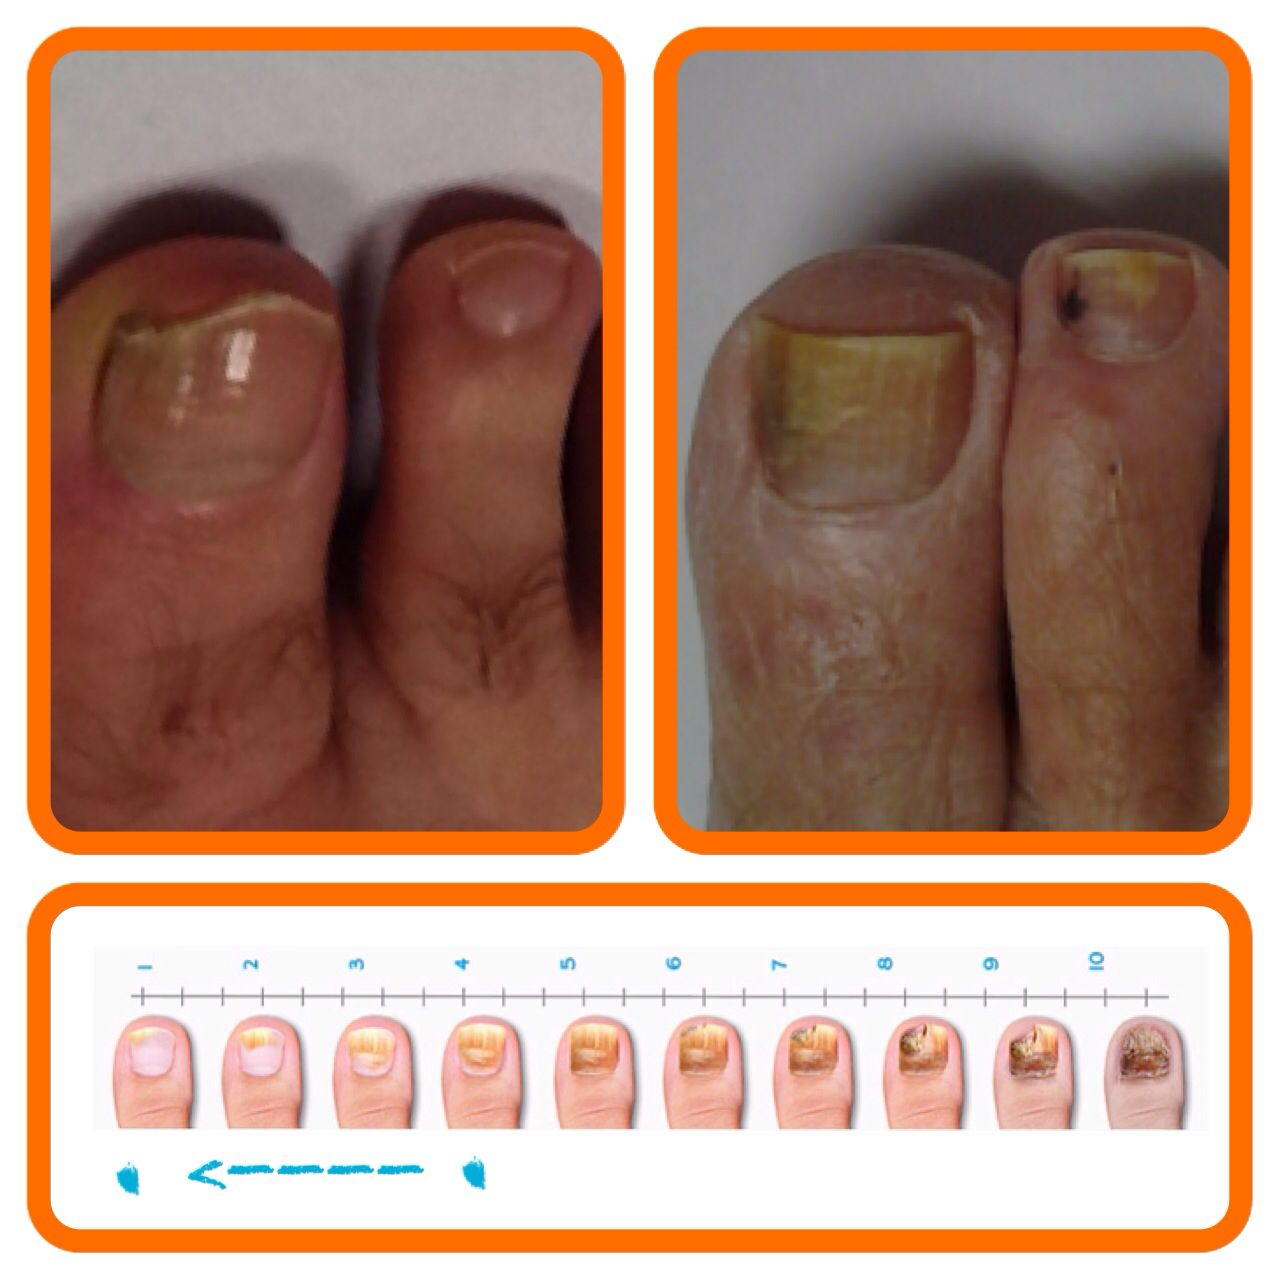 NovoNail works! If you want fungus free nails visit us online and ...